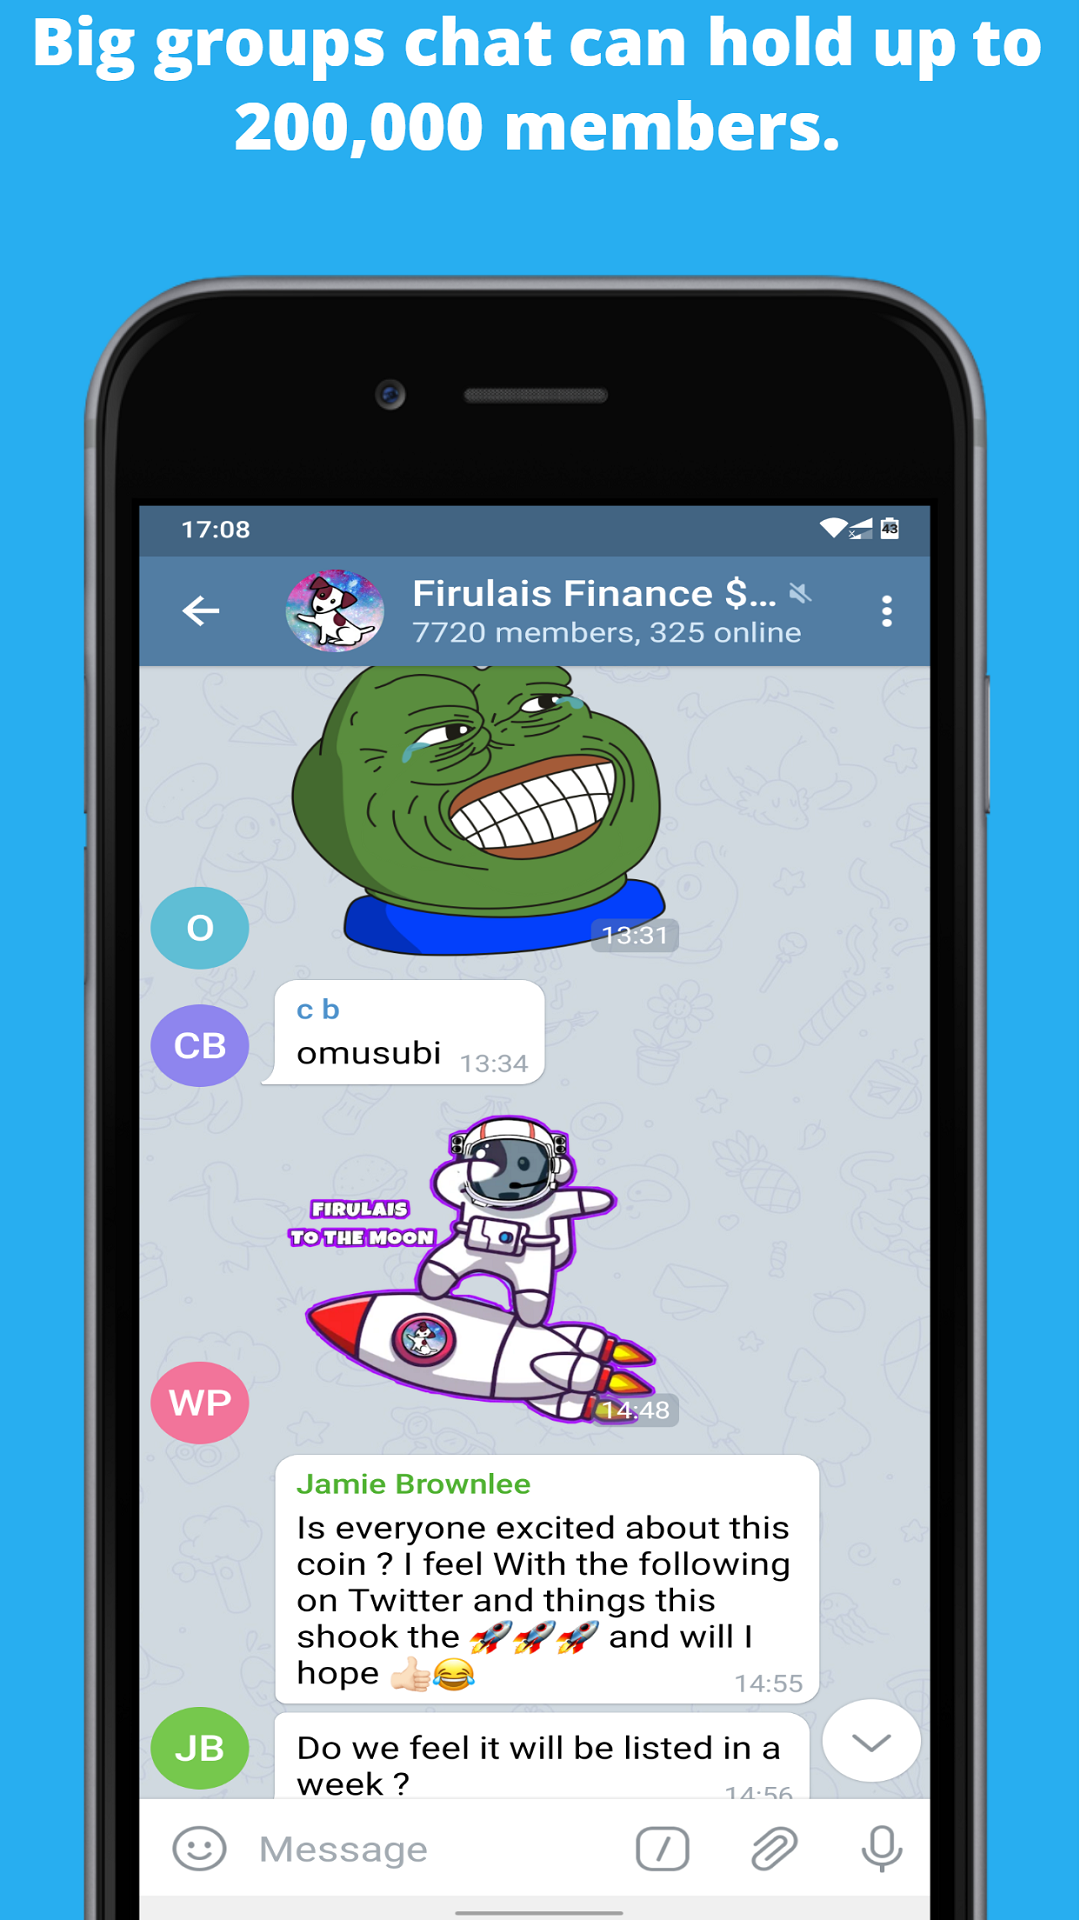 Free Video calls - Video chat and messaging